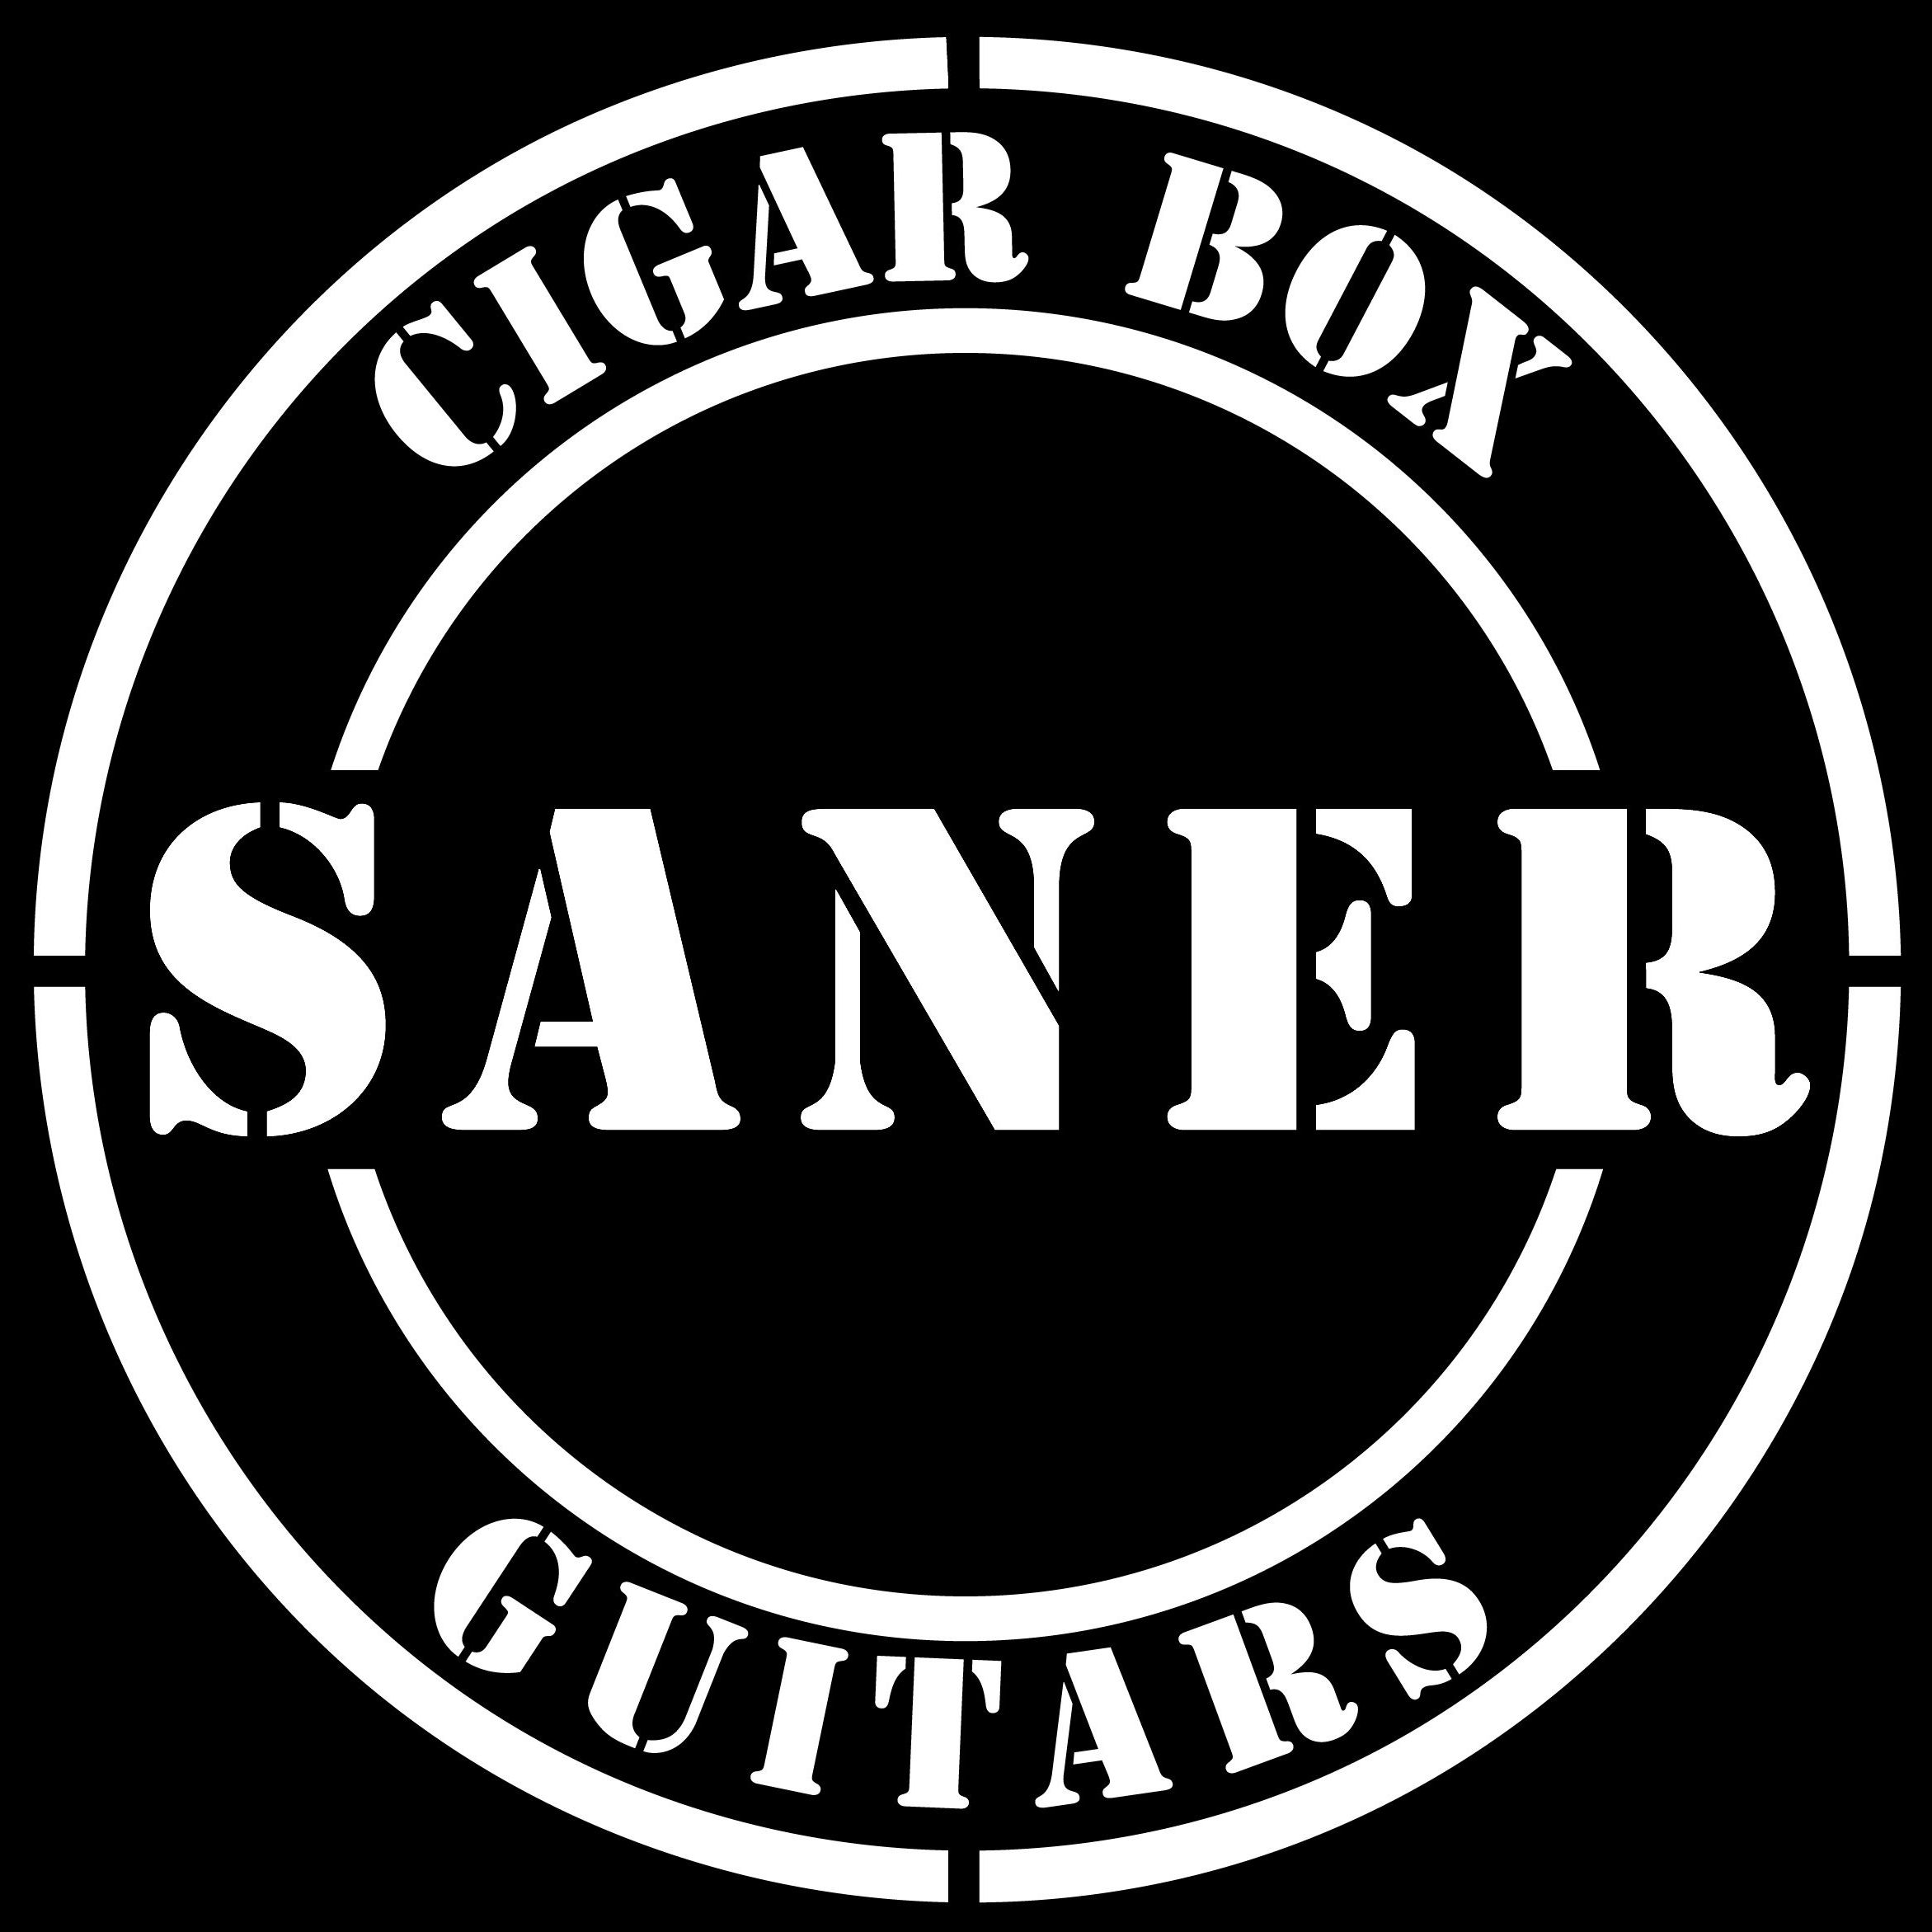 Saner Cigar Box Guitars .com